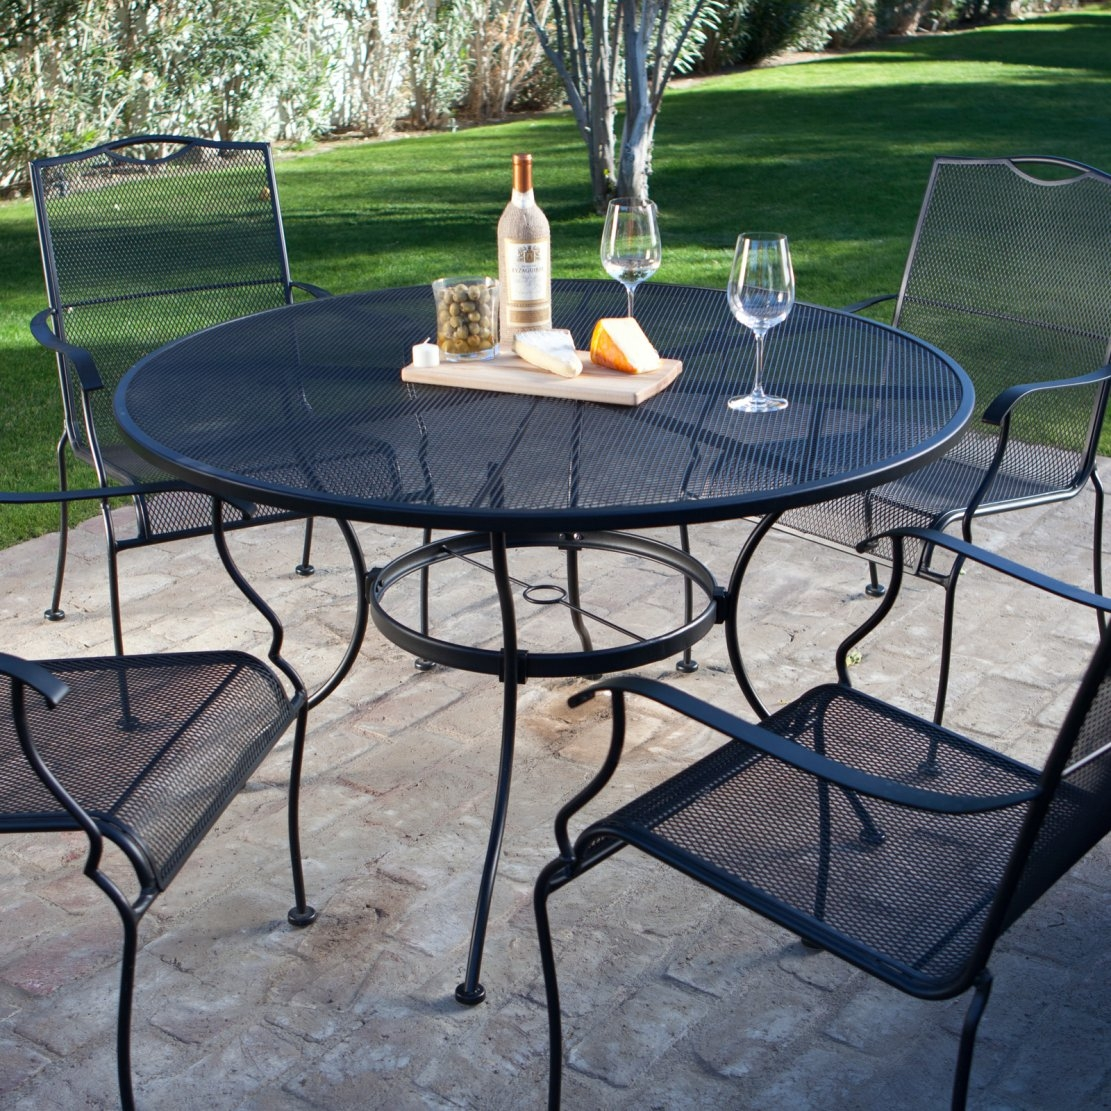 5 piece wrought iron patio furniture dining set seats 4 for Metal patio sets for sale